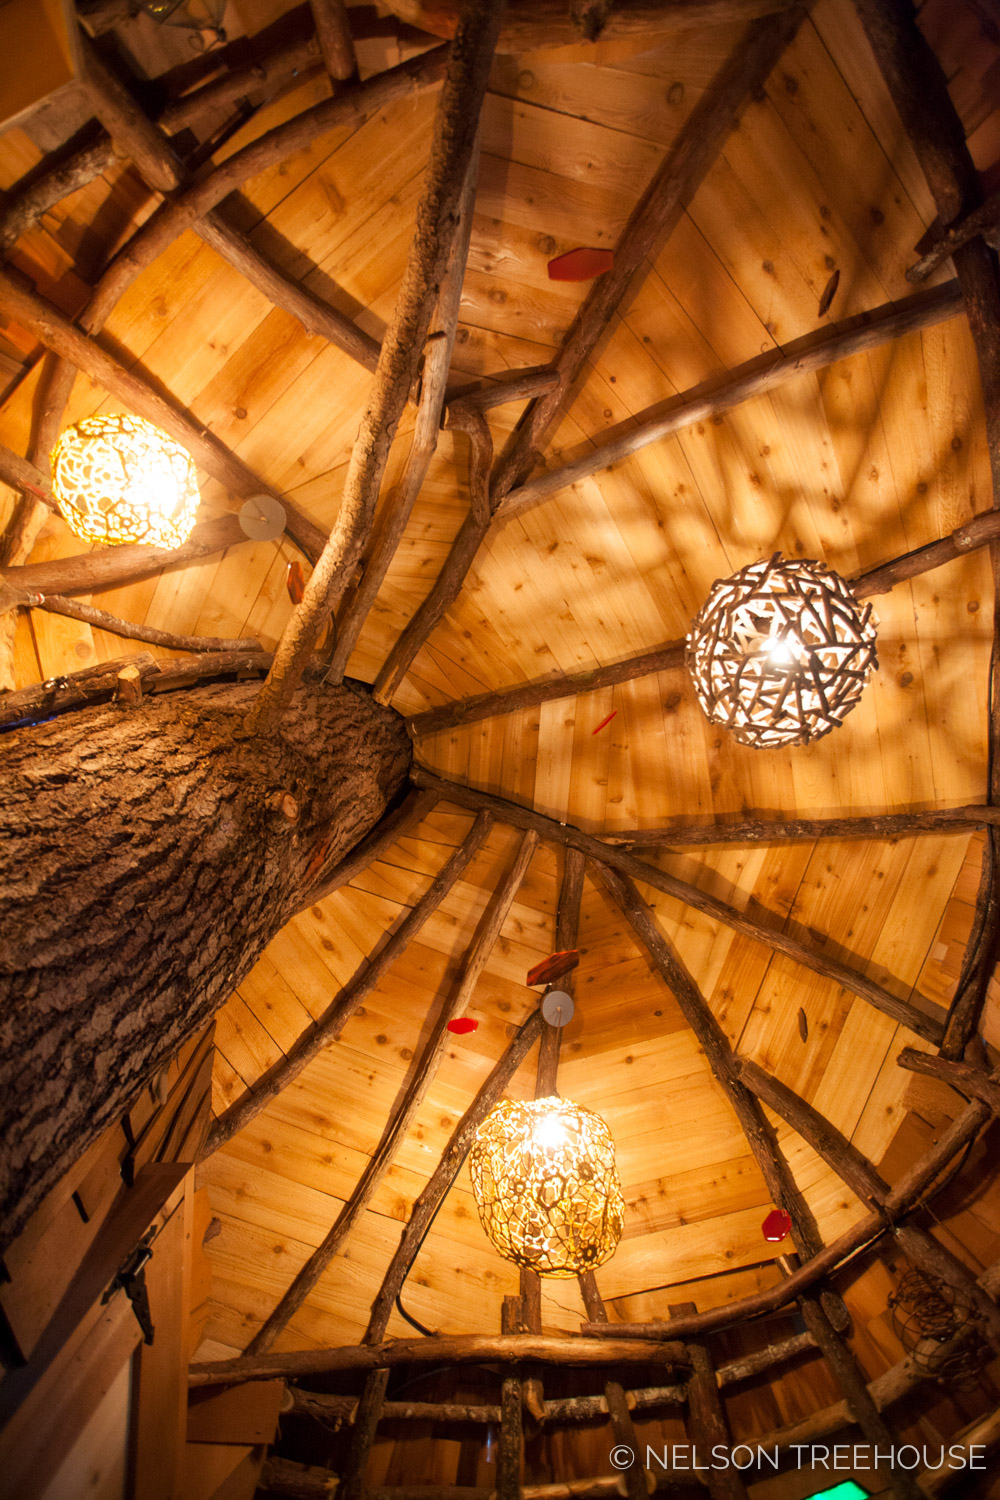 Ceiling of the beehive treehouse